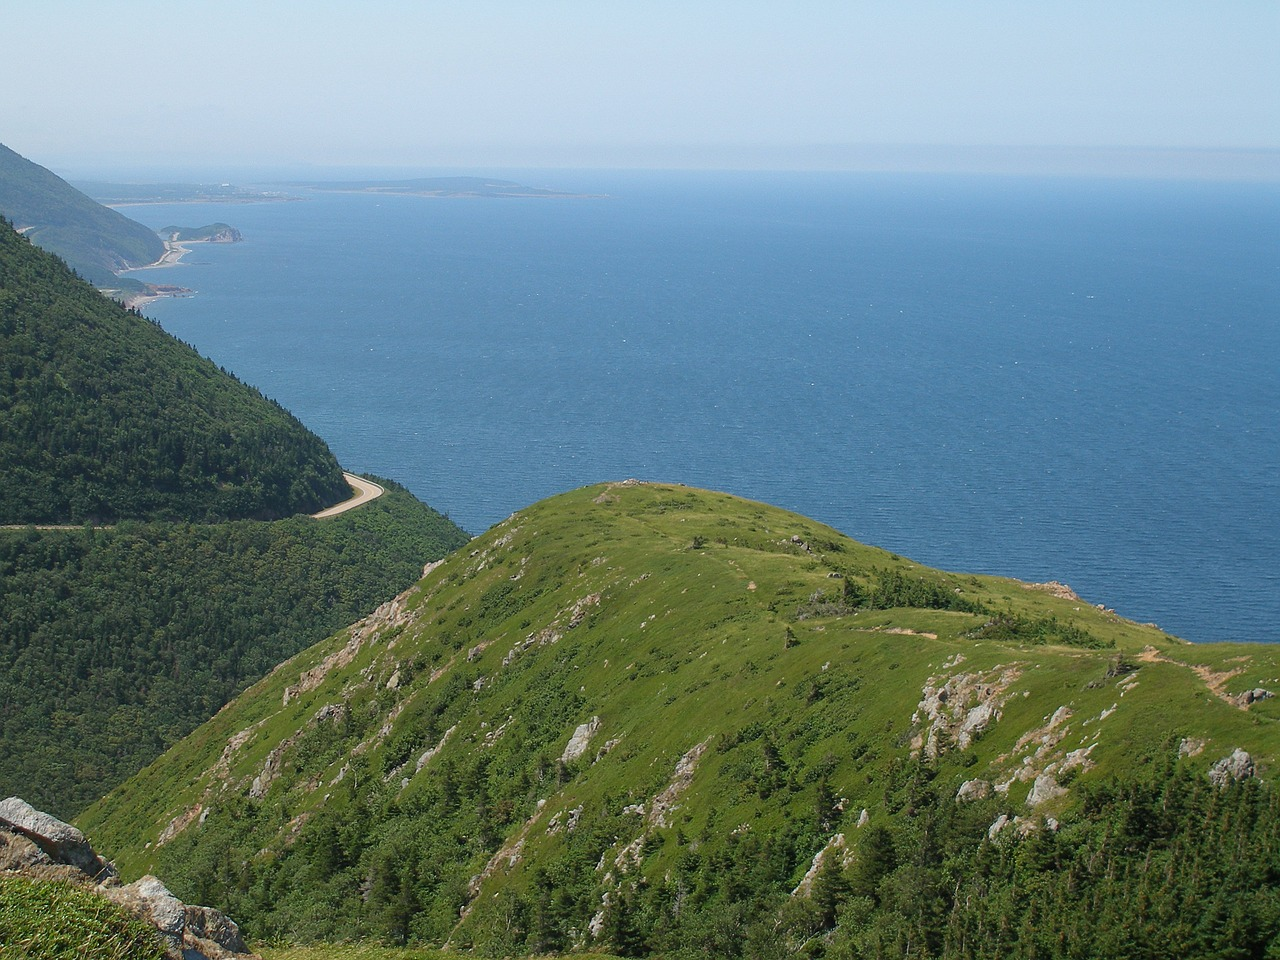 Cabot Trail - Incredible Routes for Family Road Trips in Canada on a Budget